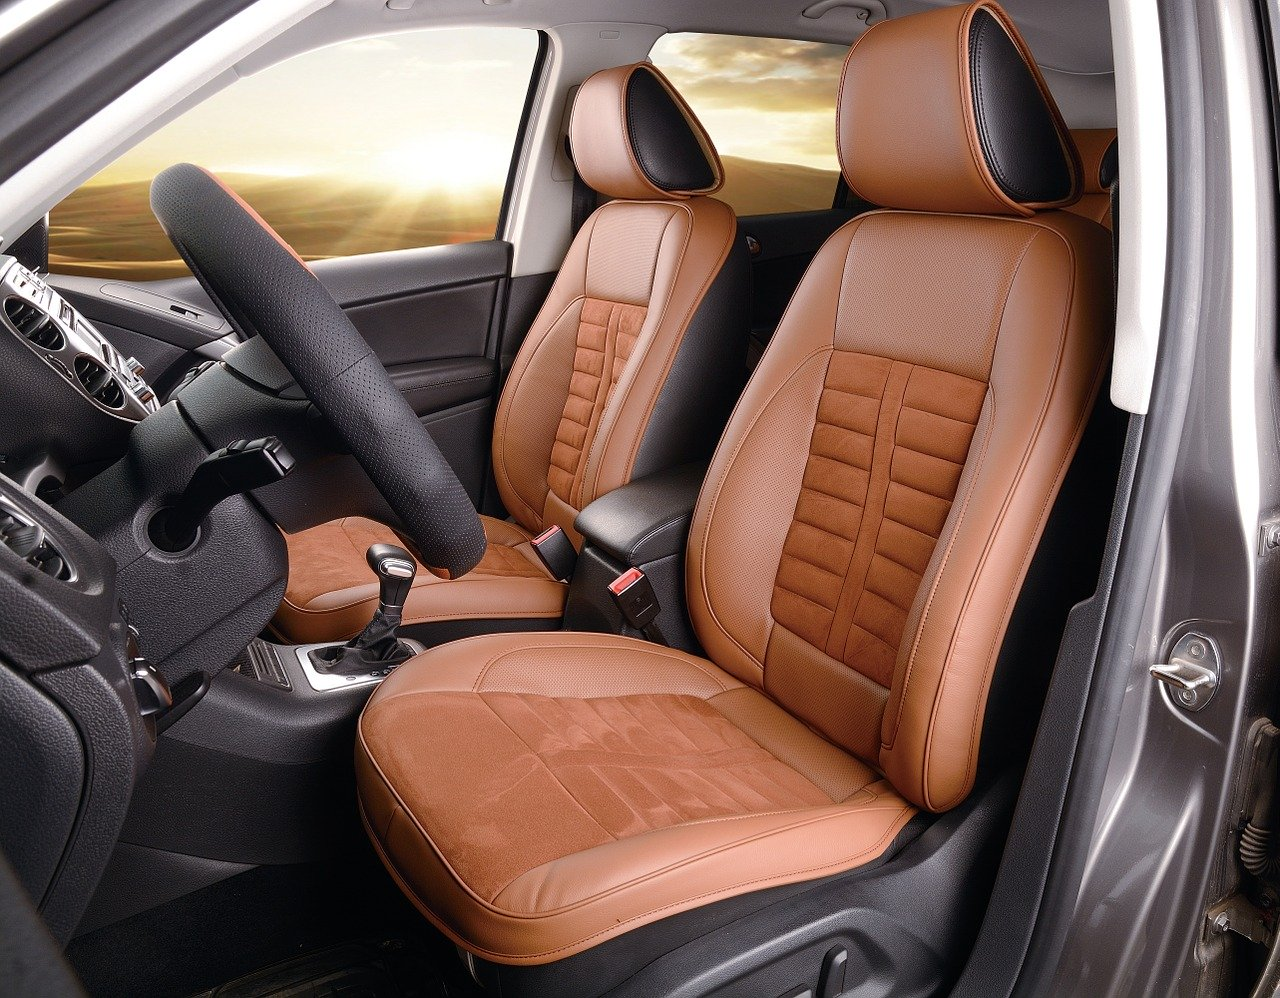 How to Buy Car Seat Covers?(ninte1.com)